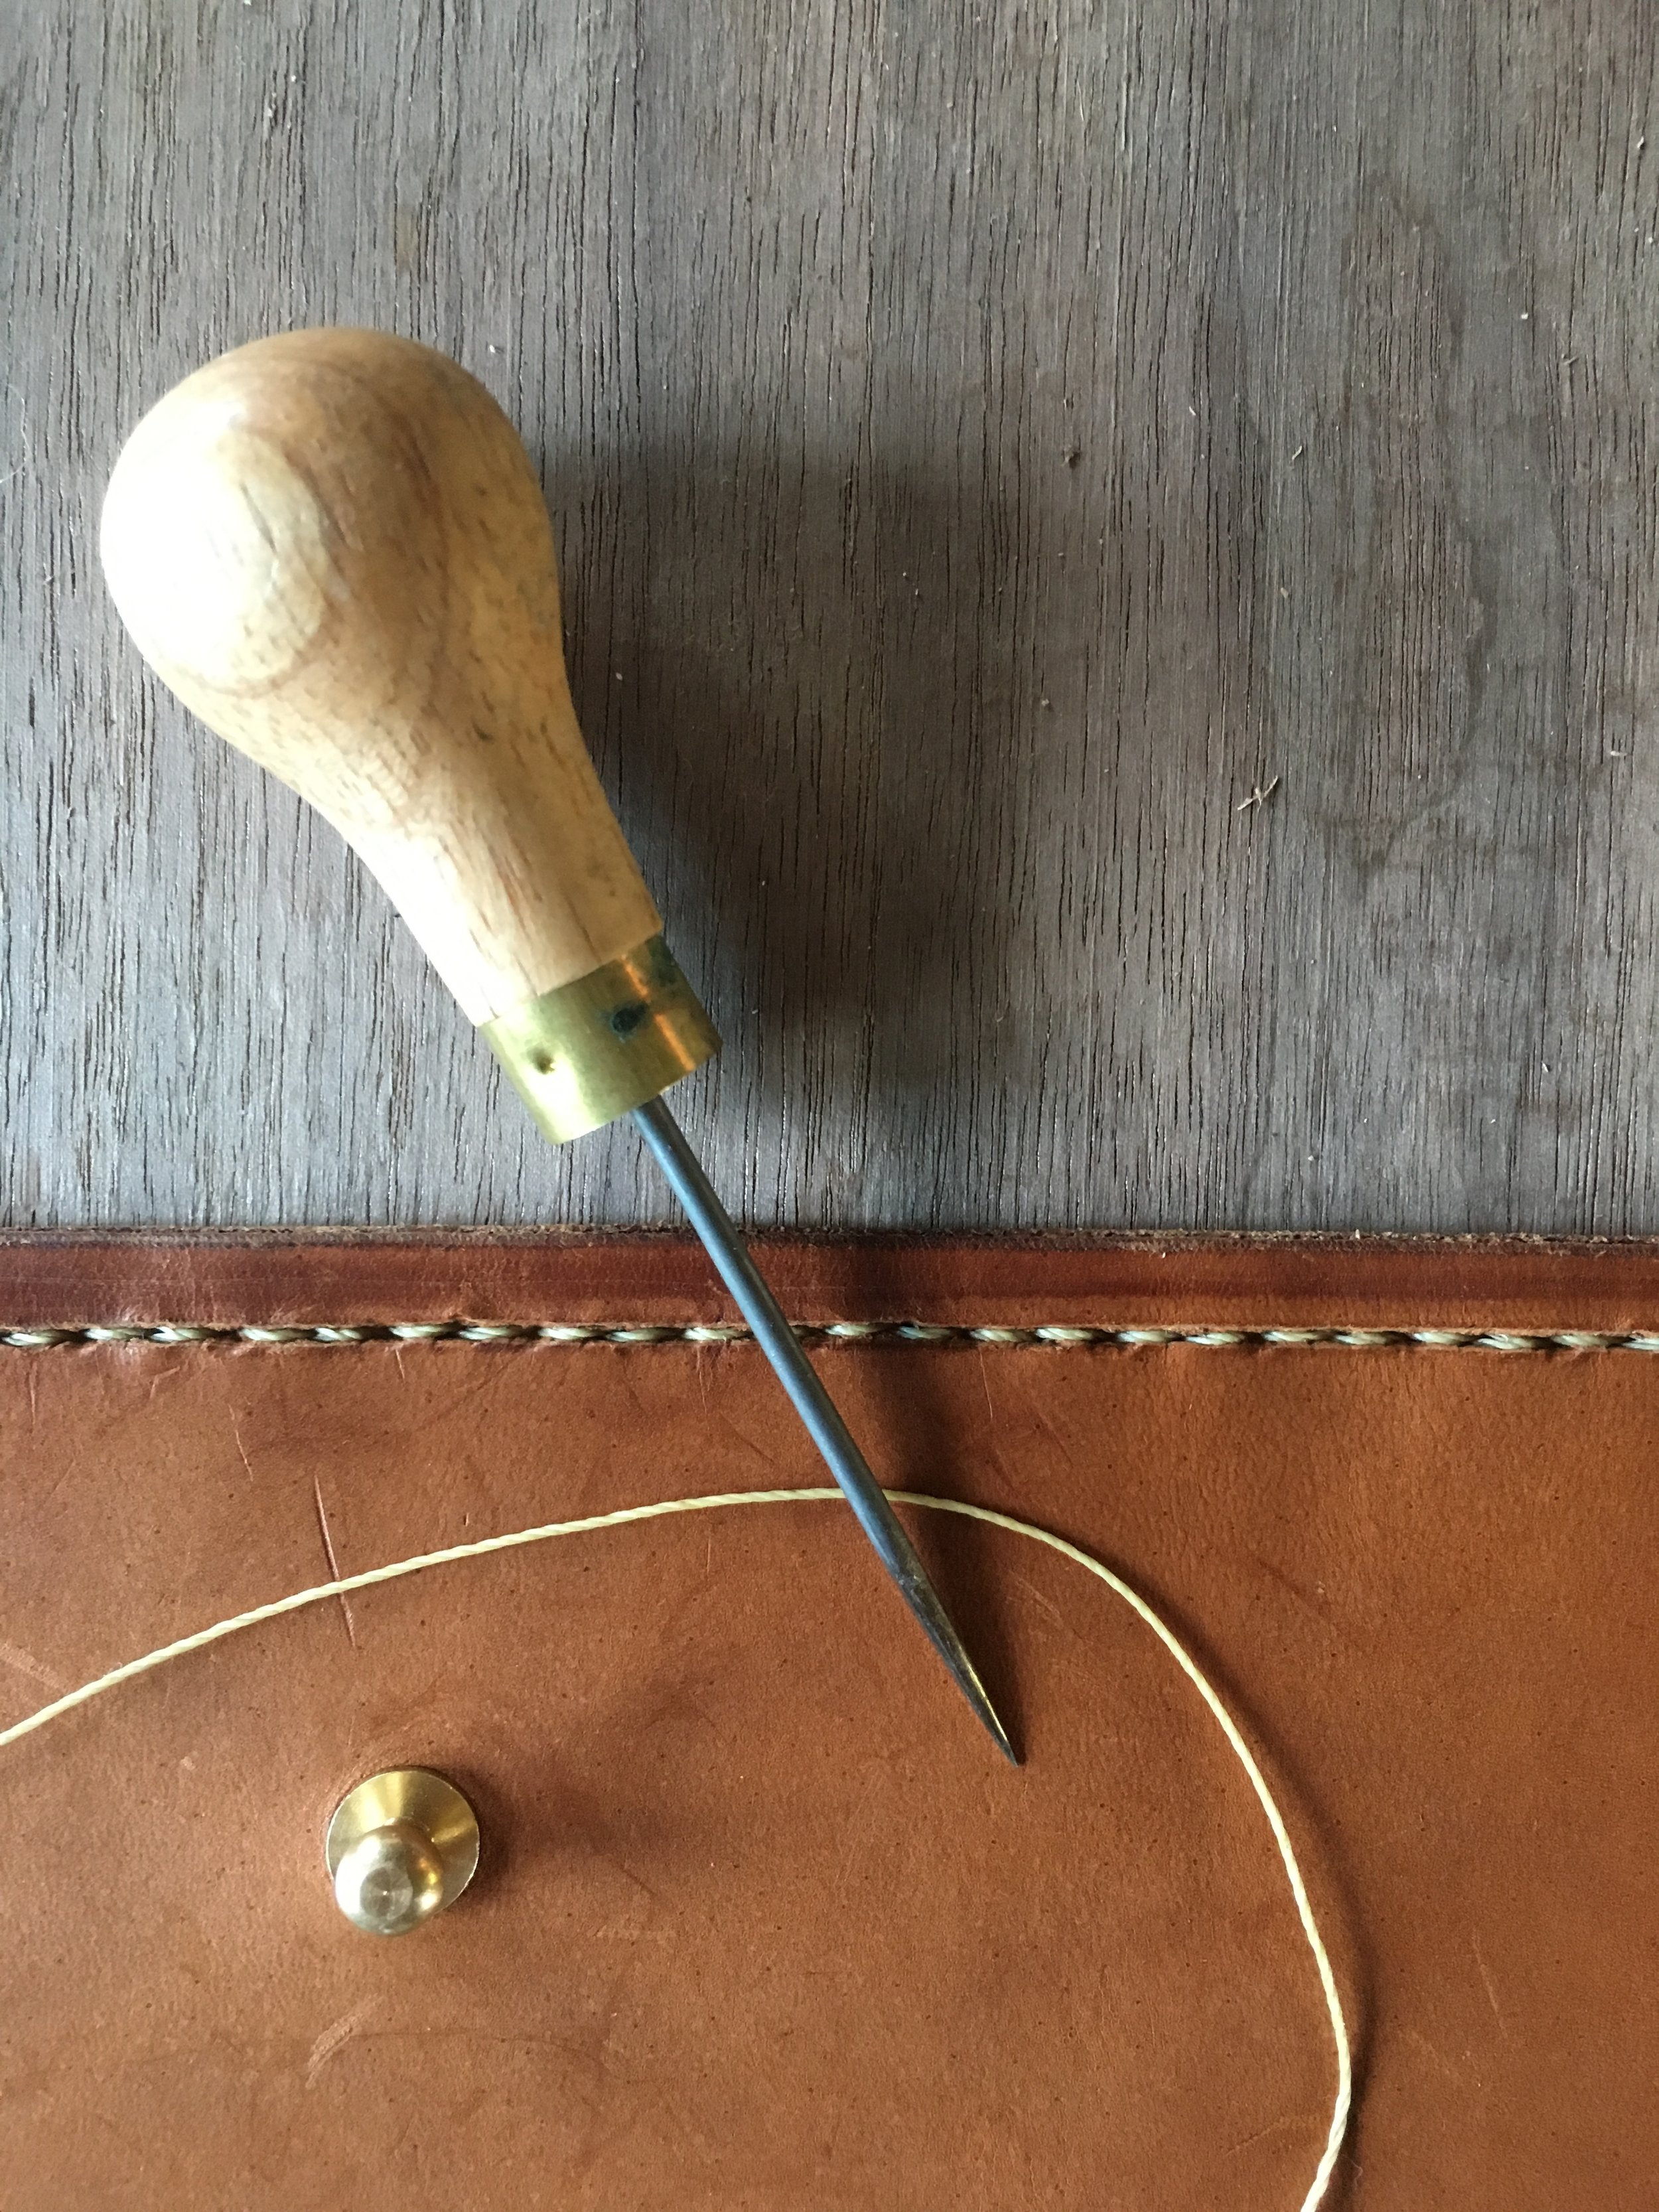 Hand Leather Smithing/ Field notebook cover - June 18, 2017Narrowsburg NY